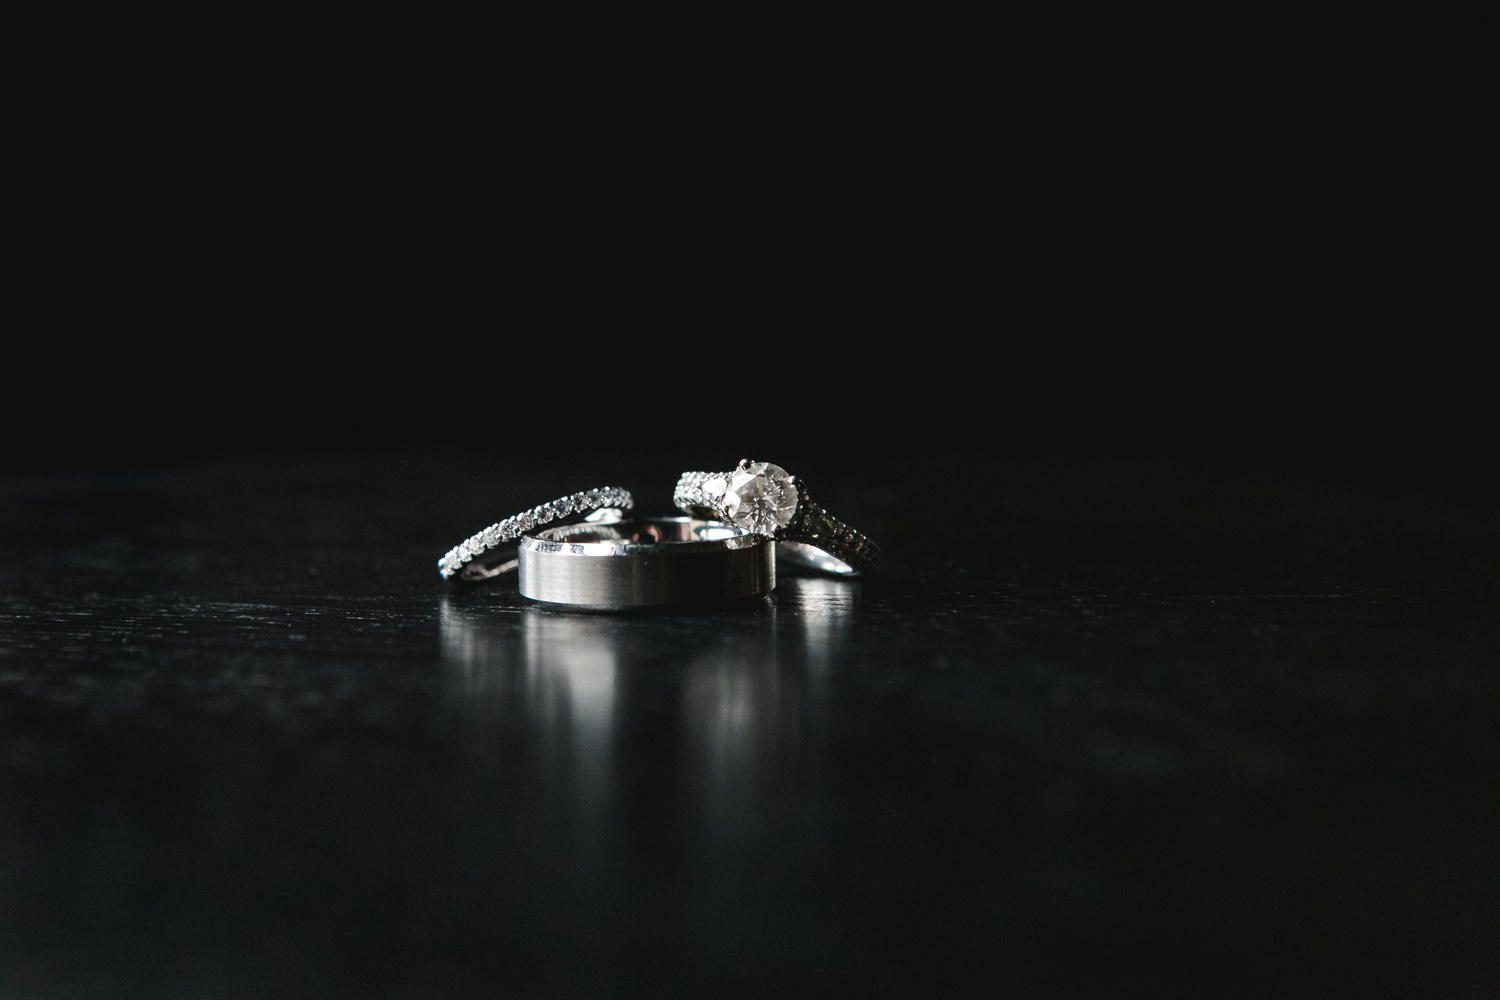 Wedding rings close up photography Olathe, Kansas. Wedding photographer Renee McDaniel Photography, Manhattan Kansas